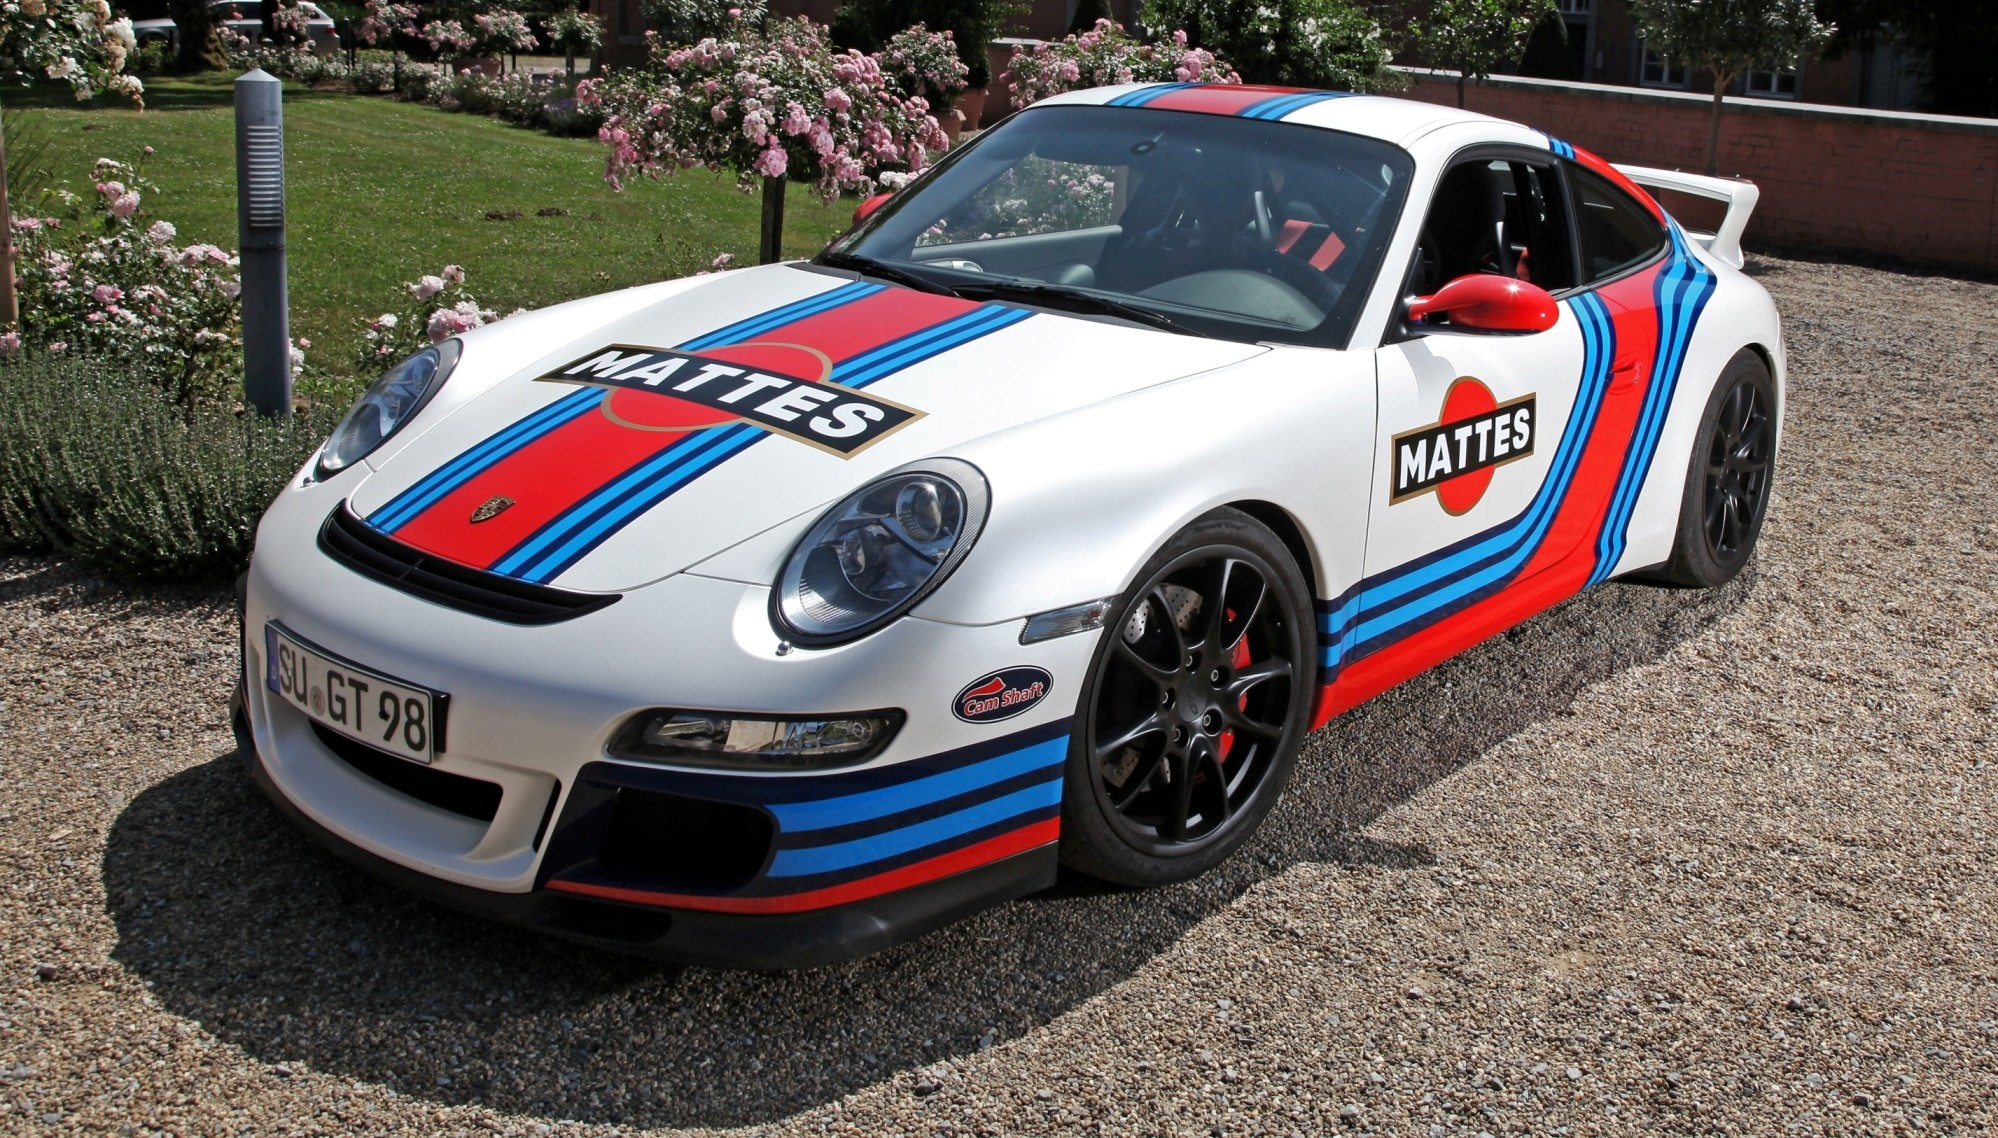 germany is mad for car wraps martini style racing livery. Black Bedroom Furniture Sets. Home Design Ideas